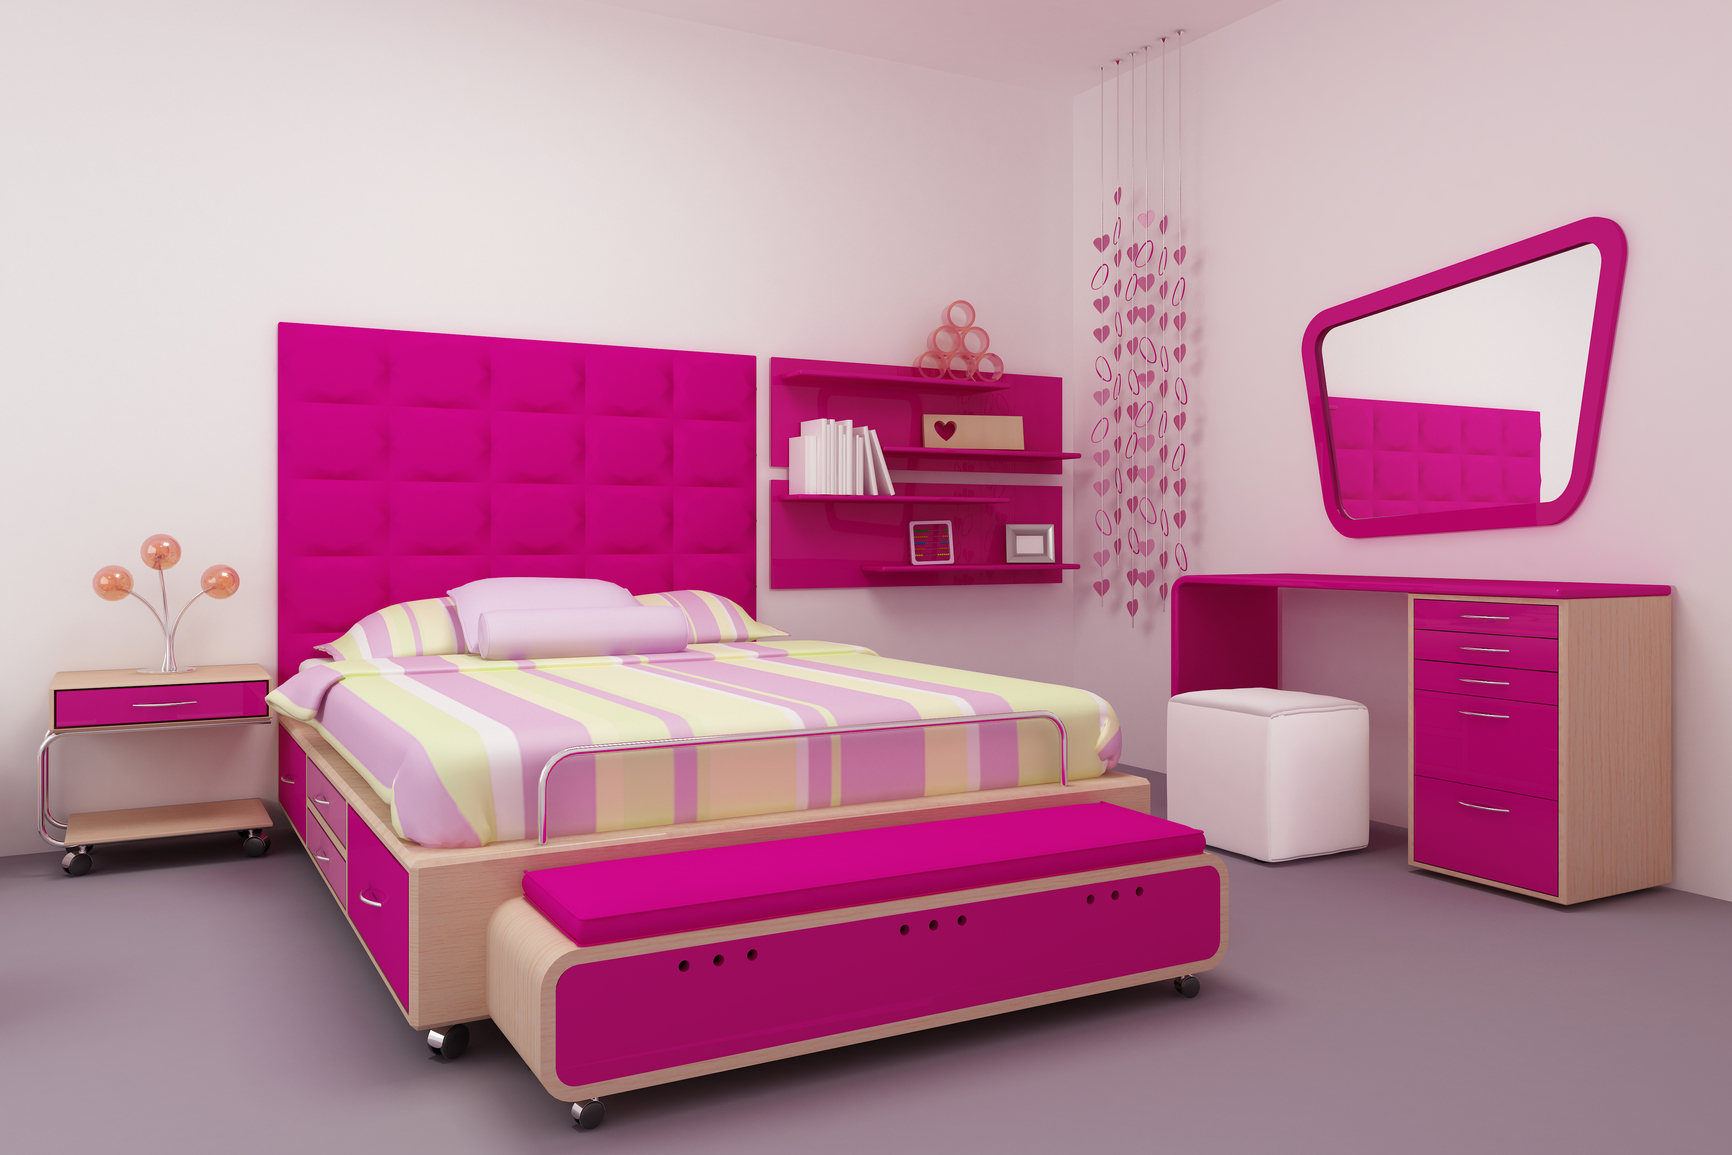 Pink Bedroom Styles for Girls with Dressing Room